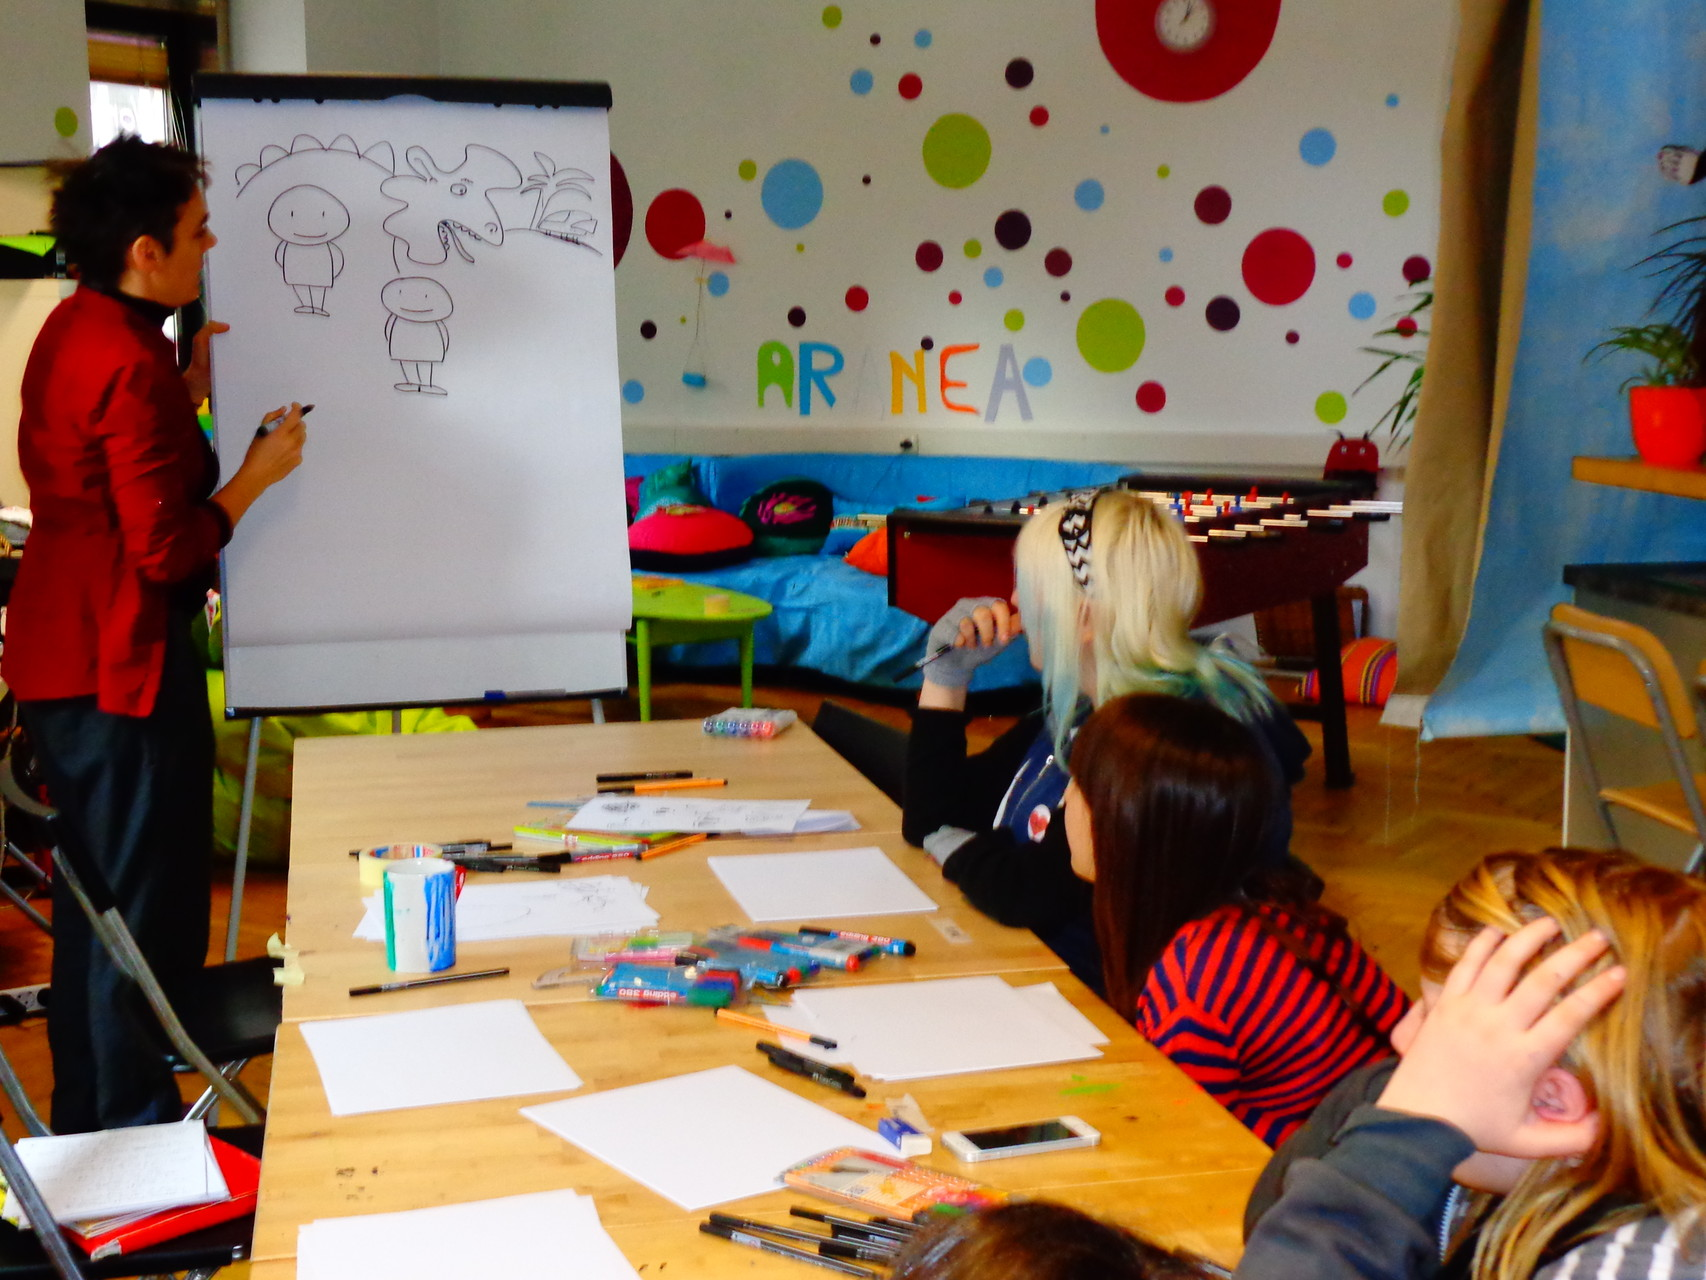 Comic-Workshop im Mädchenzentrum ARANEA (Foto: ARANEA)